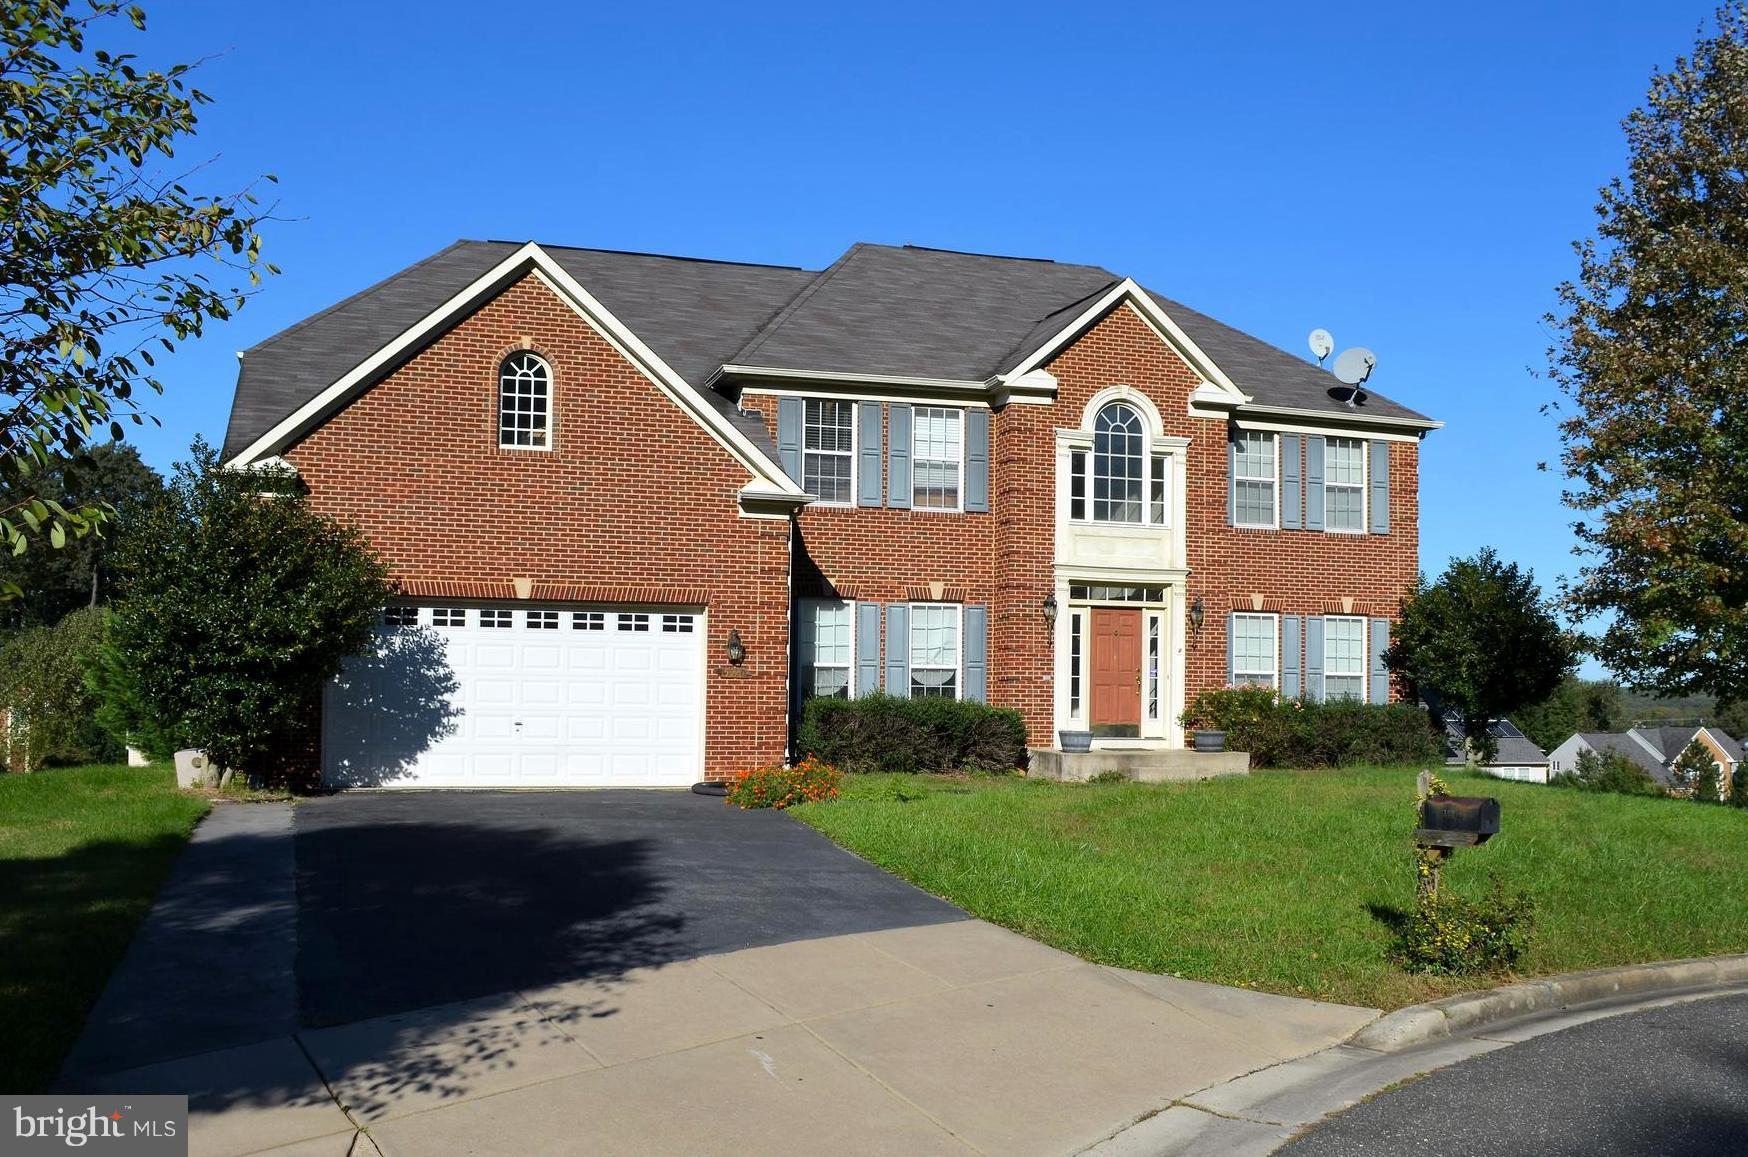 15020 RUNNING PARK COURT, BOWIE, MD 20715